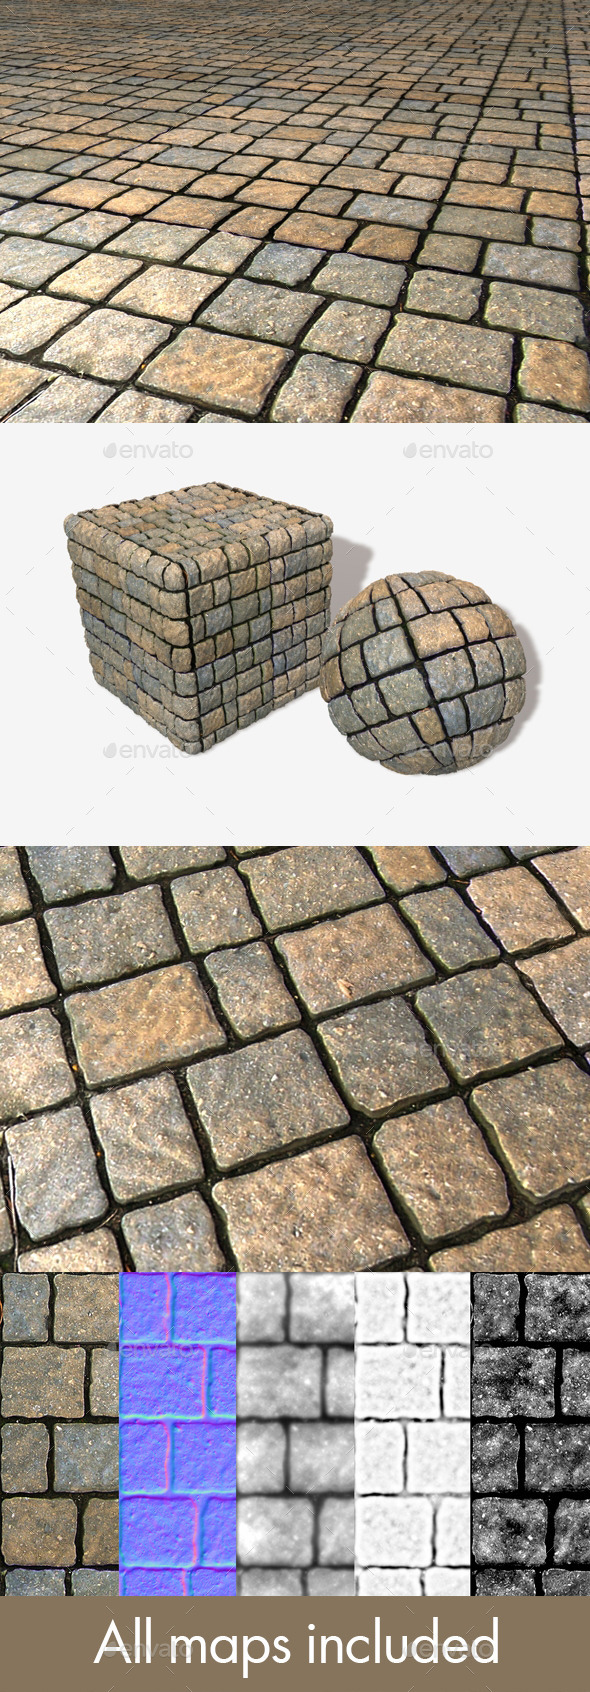 Floor Bricks Seamless Texture